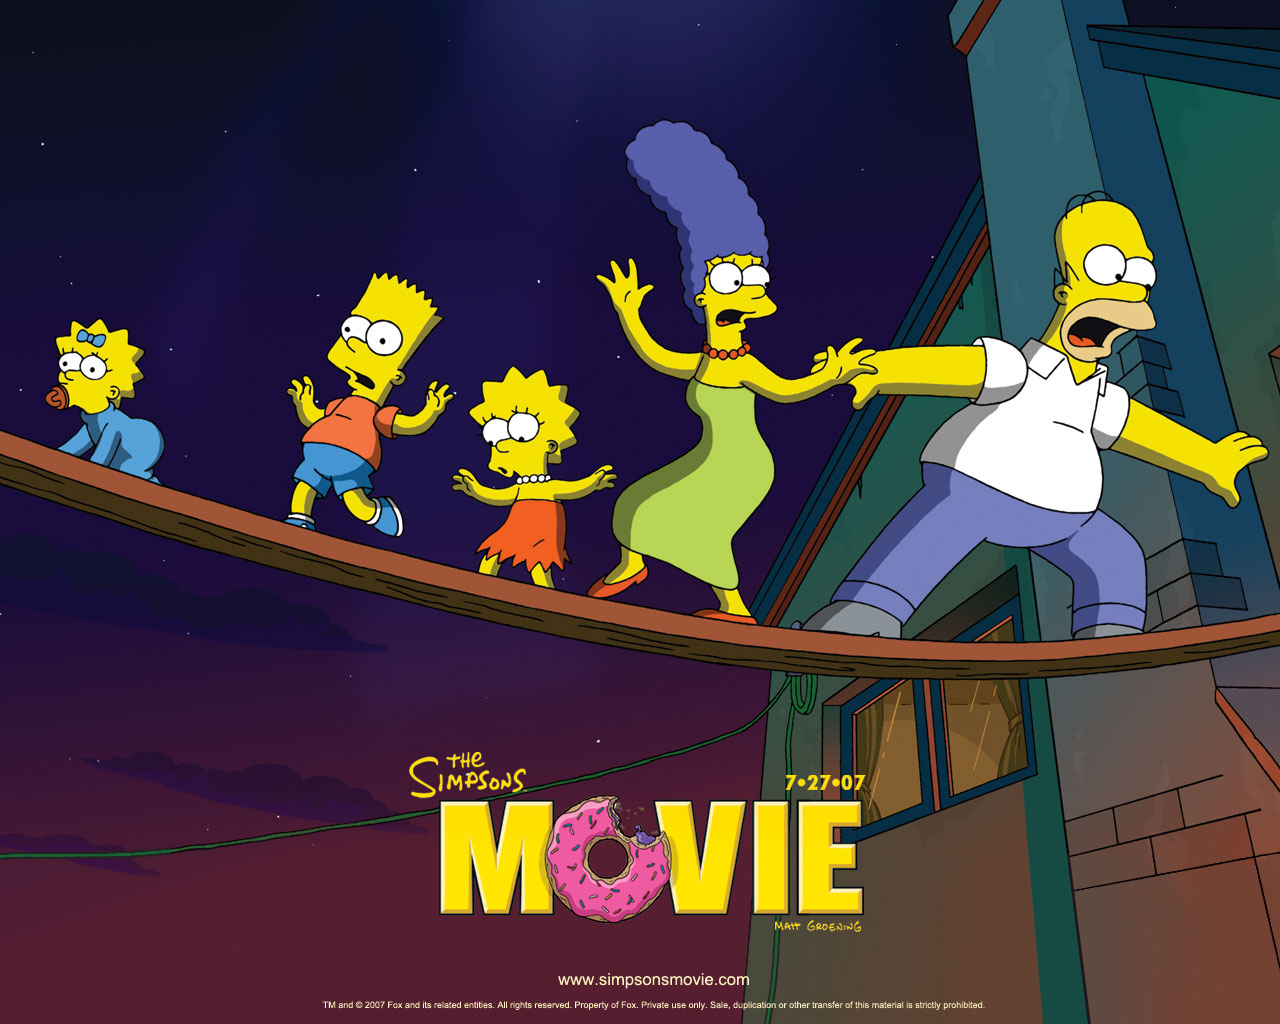 Free Download The Simpsons Movie Can Be Purchased On Both Dvd And Blu Ray At Amazon 1280x1024 For Your Desktop Mobile Tablet Explore 73 Simpsons Movie Wallpaper Crazy Wallpapers